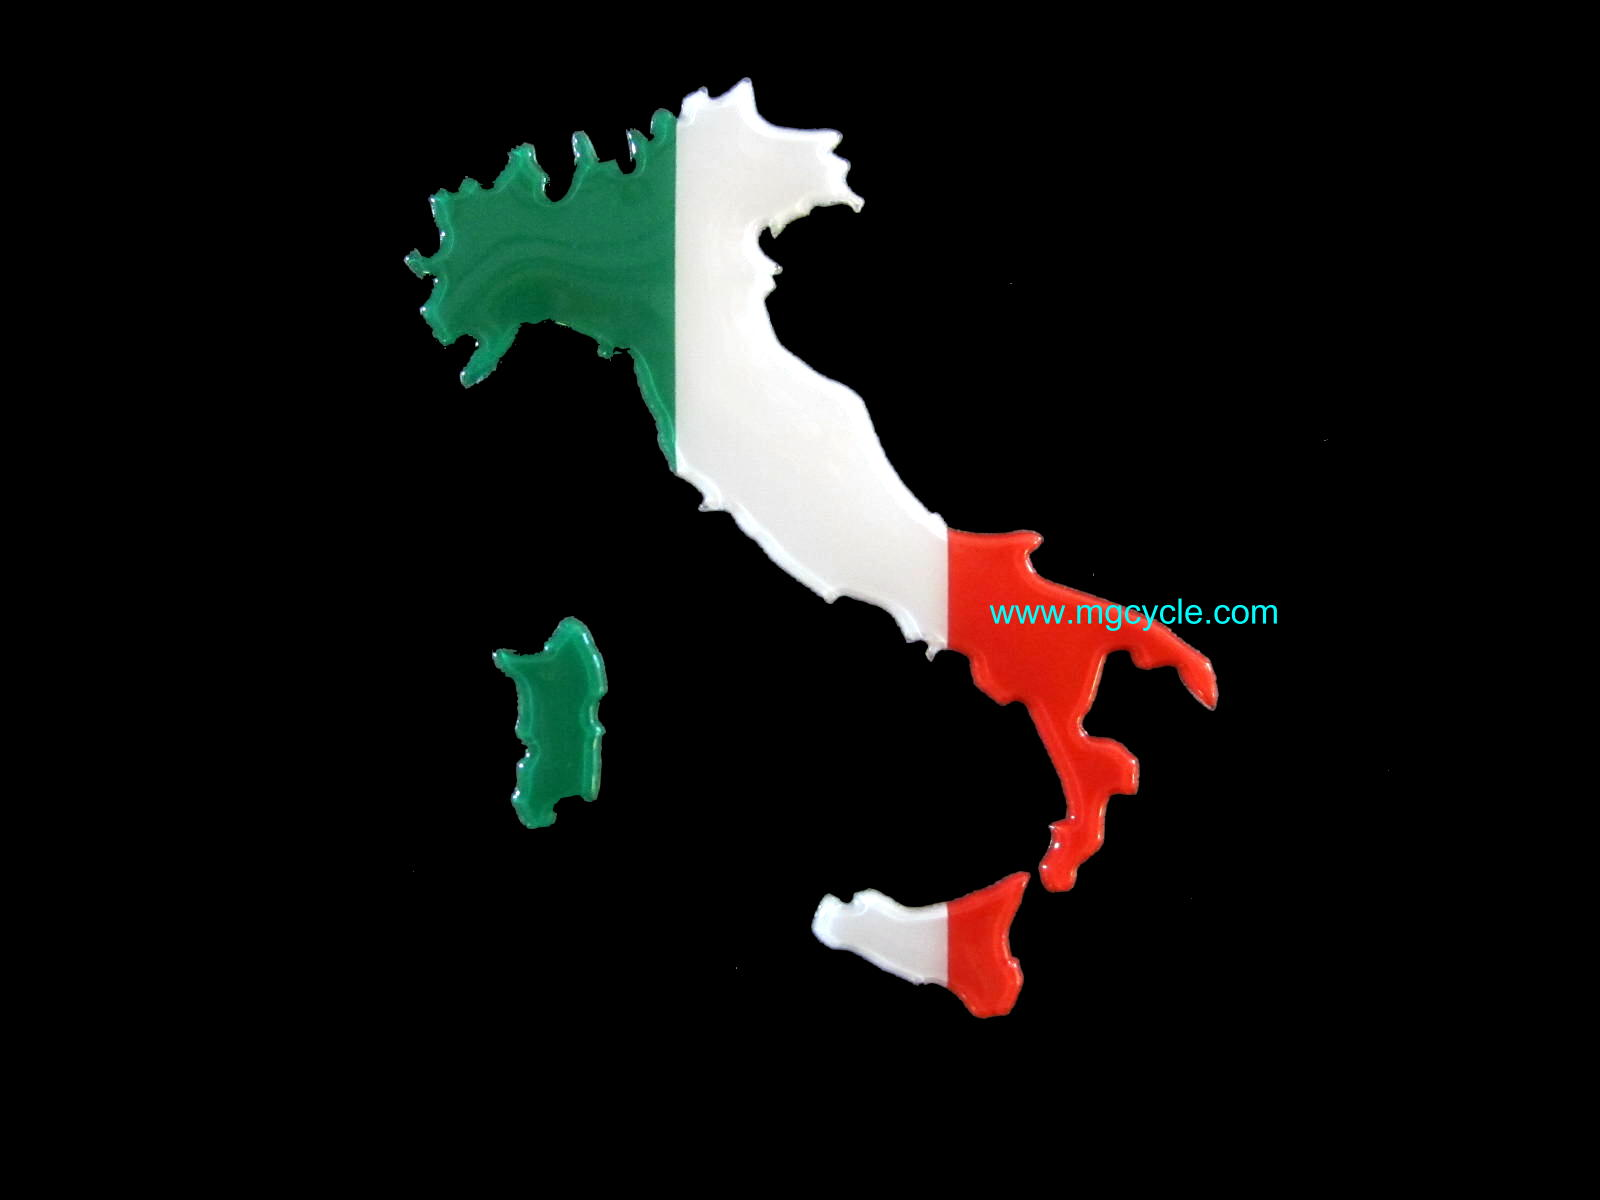 sticker: tri-color image of Italy